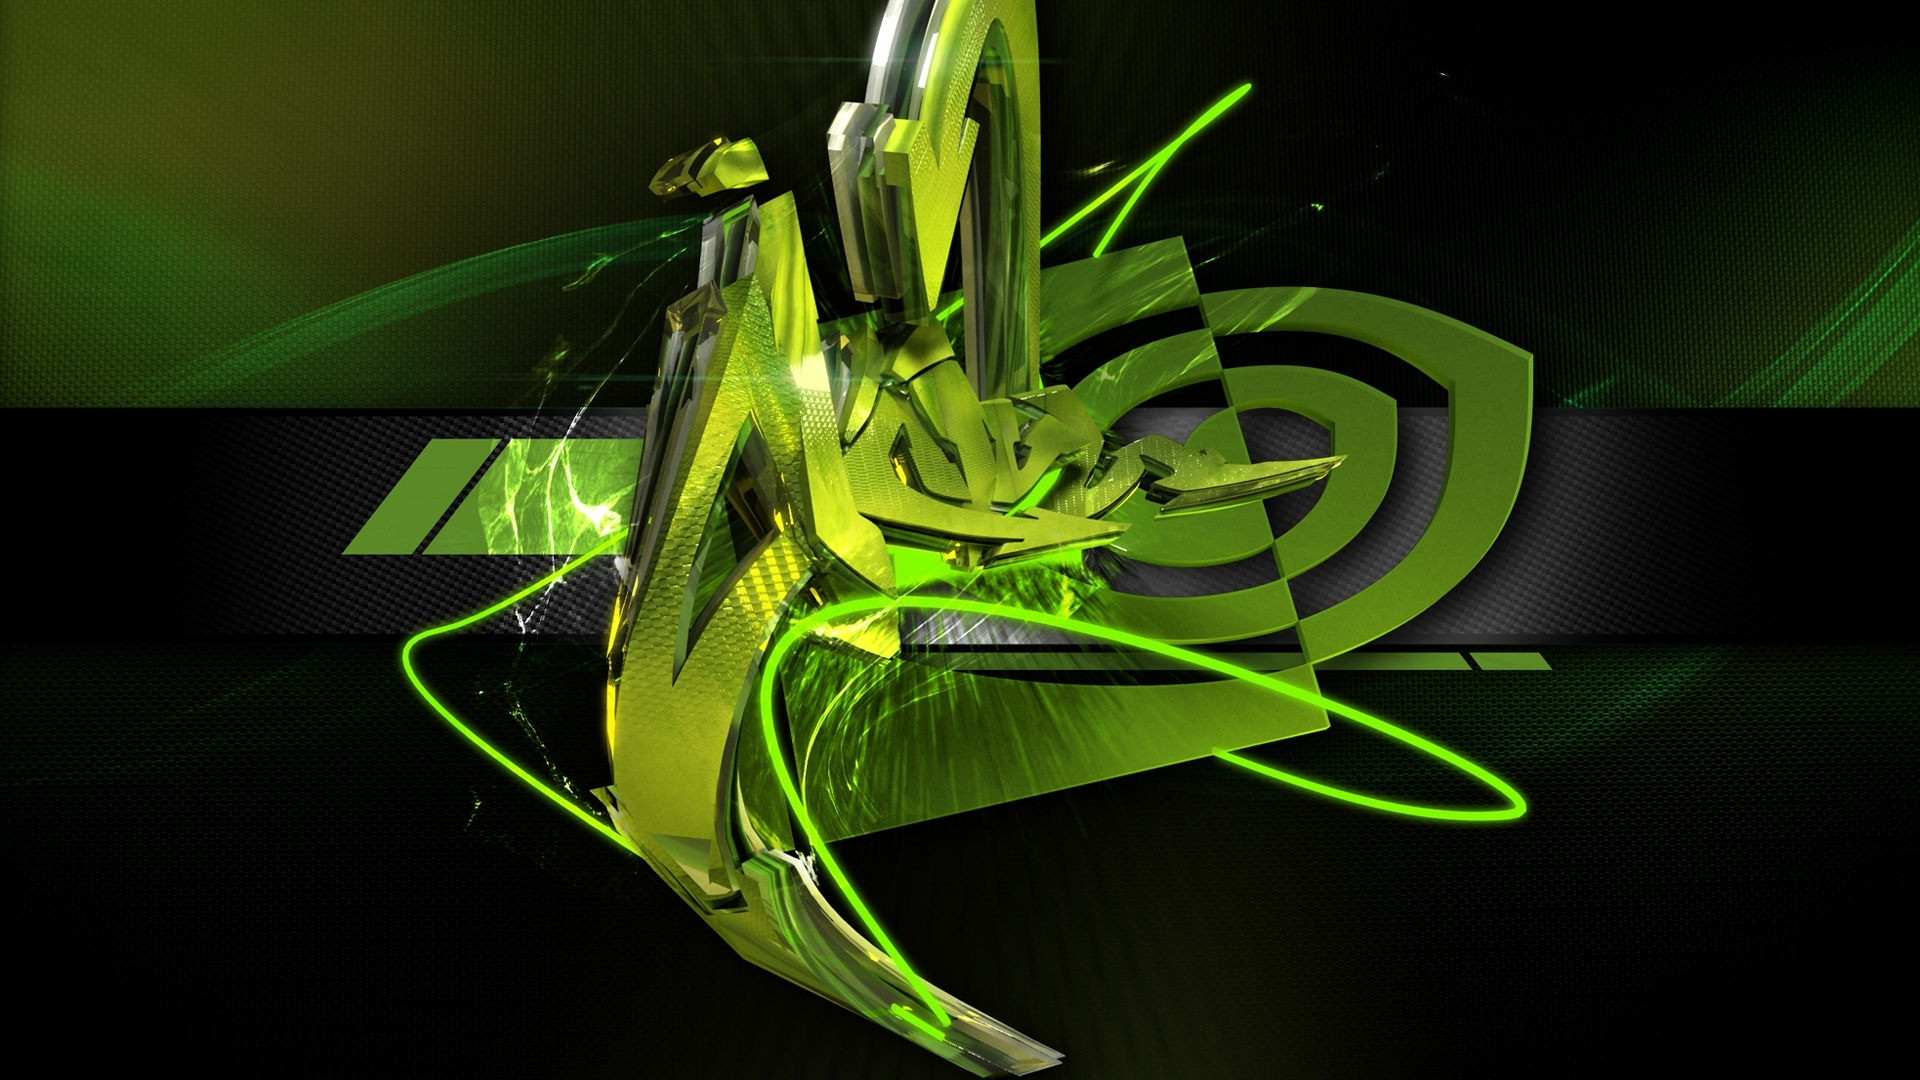 48 4k nvidia wallpaper on wallpapersafari - Desktop wallpaper 4k ...